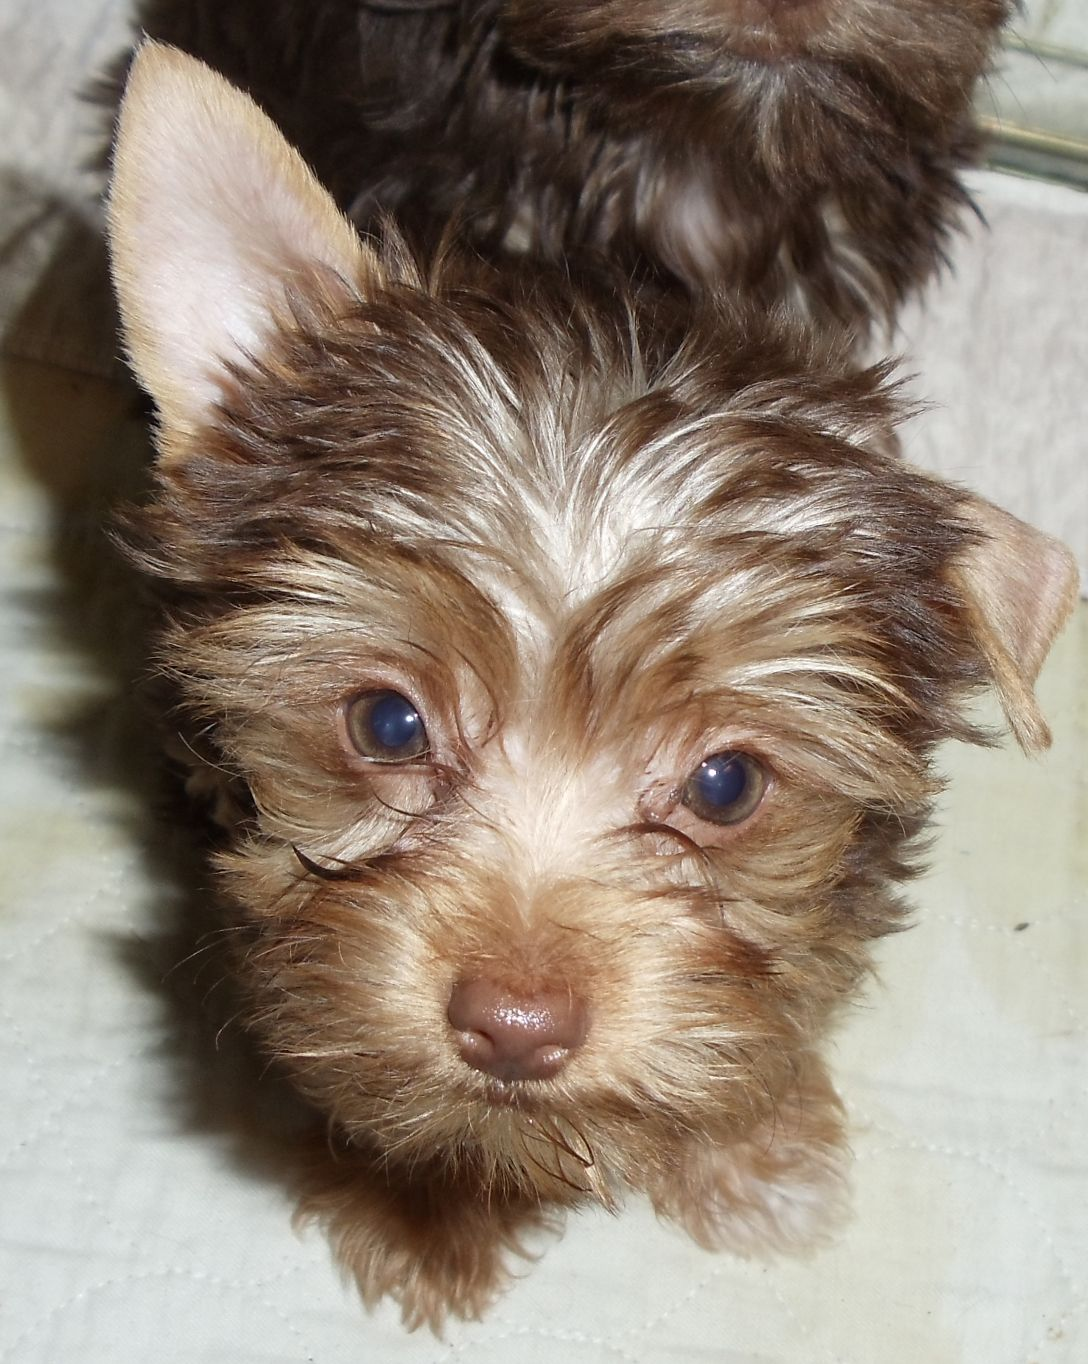 Little Miss Snickers Smarty Pants Darling Teacup Yorkie Puppy